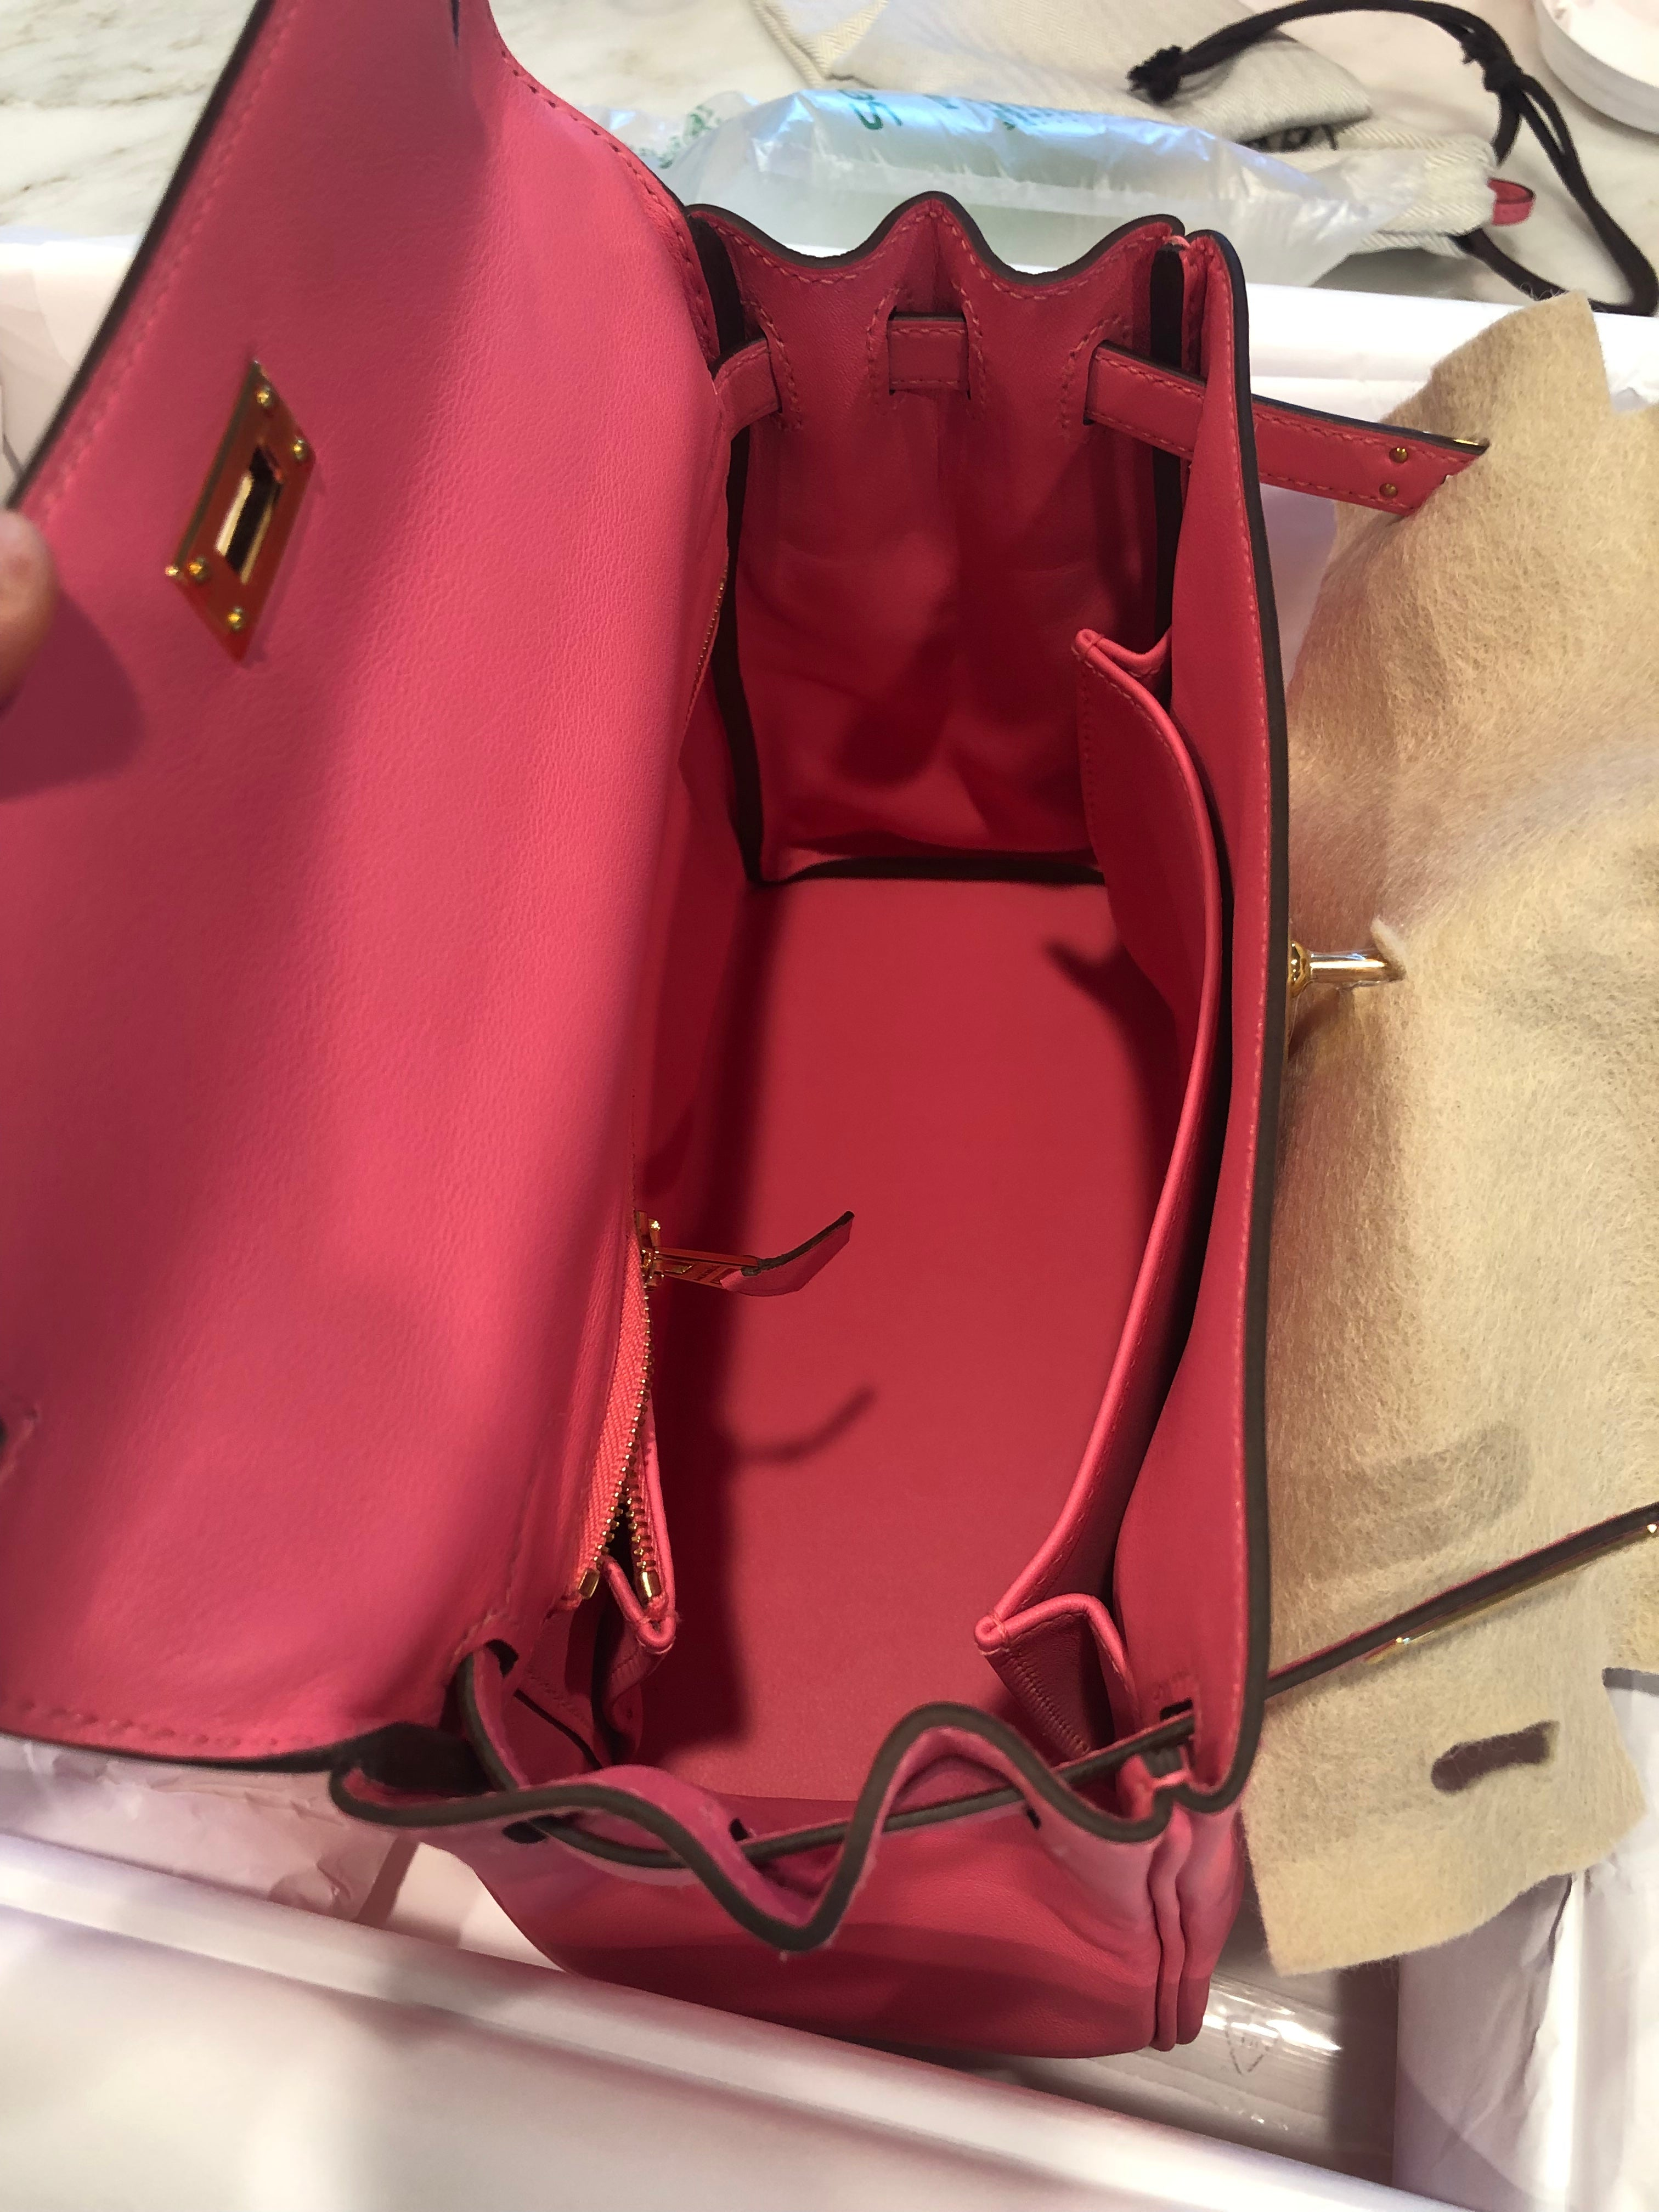 Hermes Kelly 25 bag